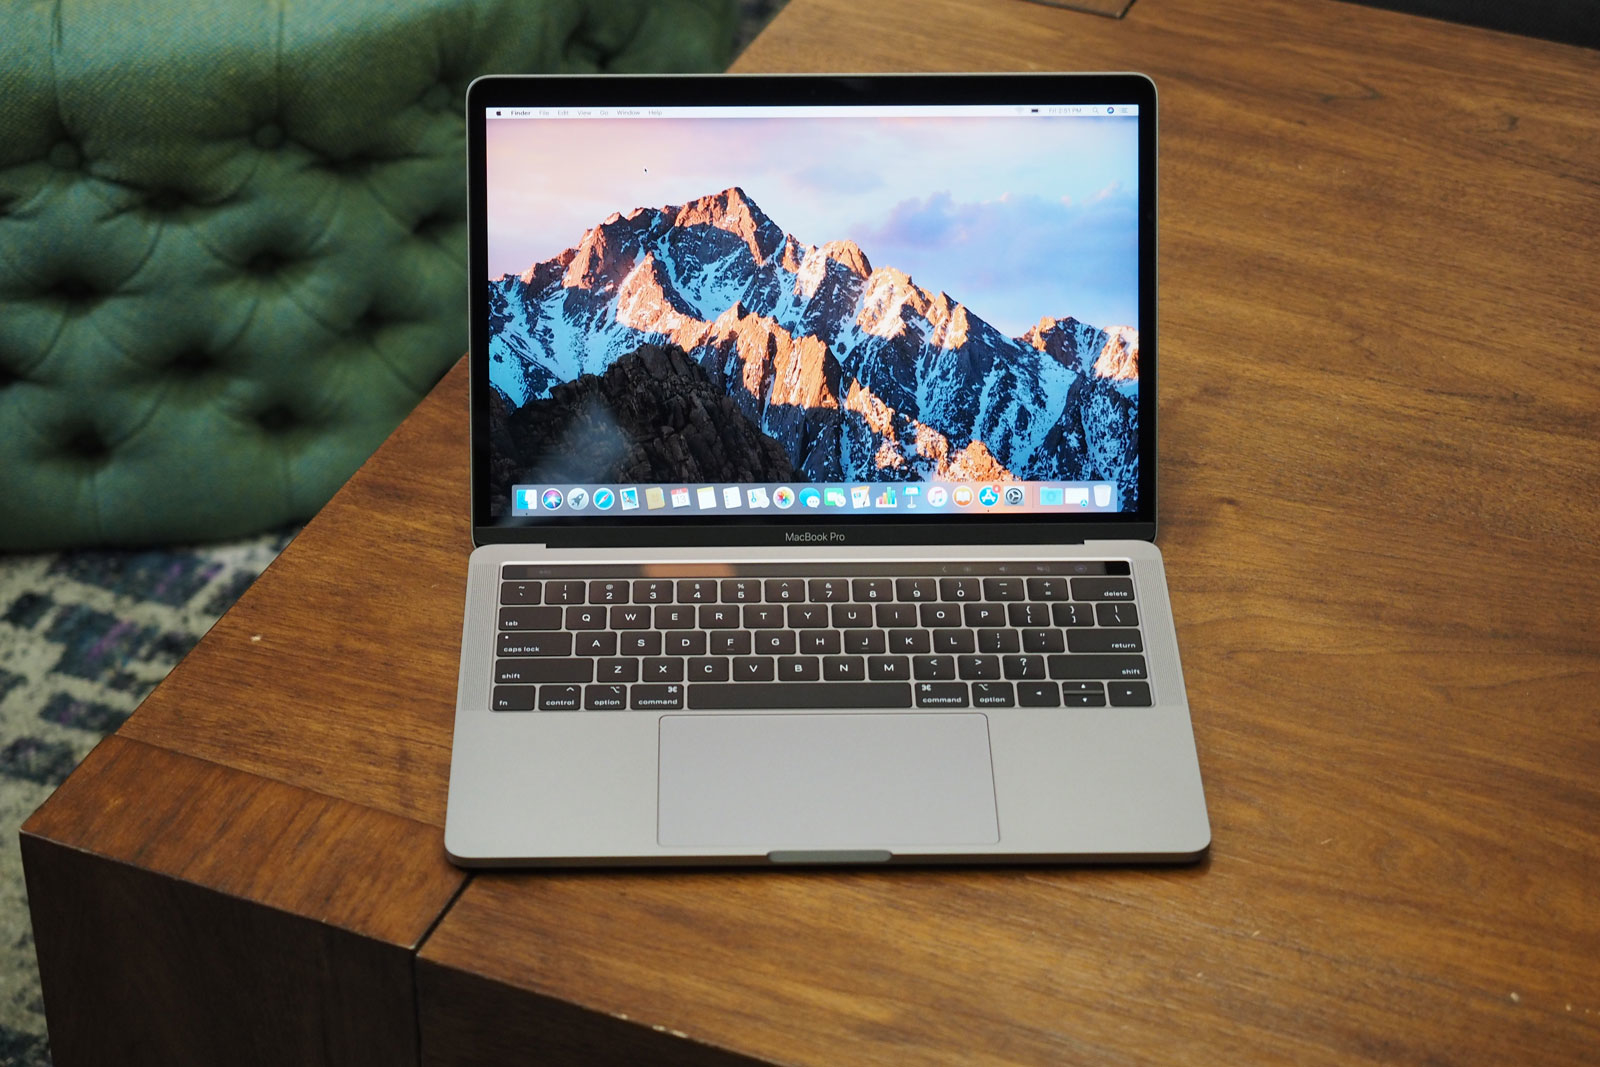 10 Best Chosen Laptops In 2018: Macbook Pro Laptop